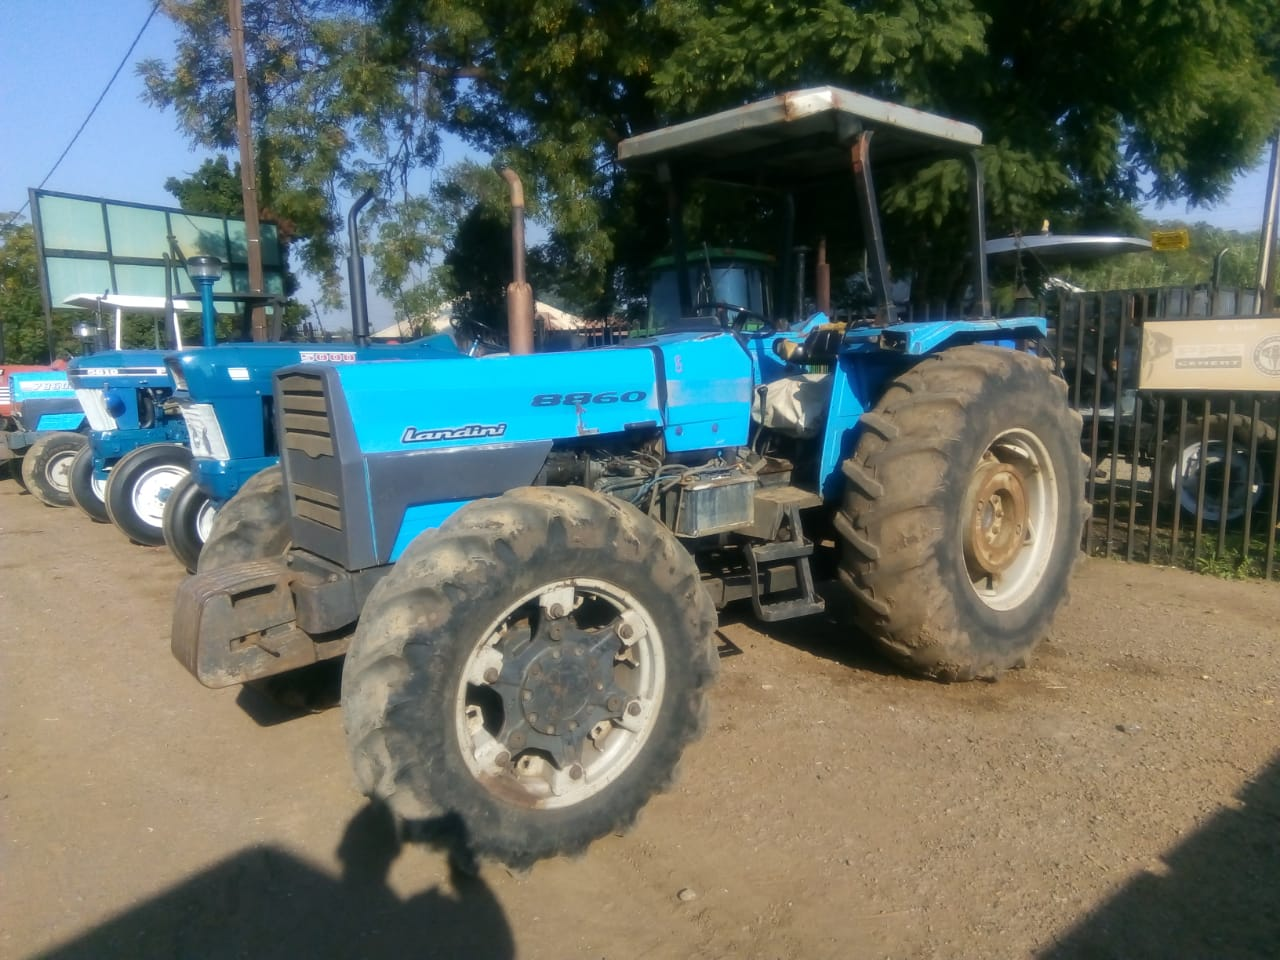 Blue Landini 8860 59.7Kw / 80 Hp 4x4 Pre-Owned Tractor